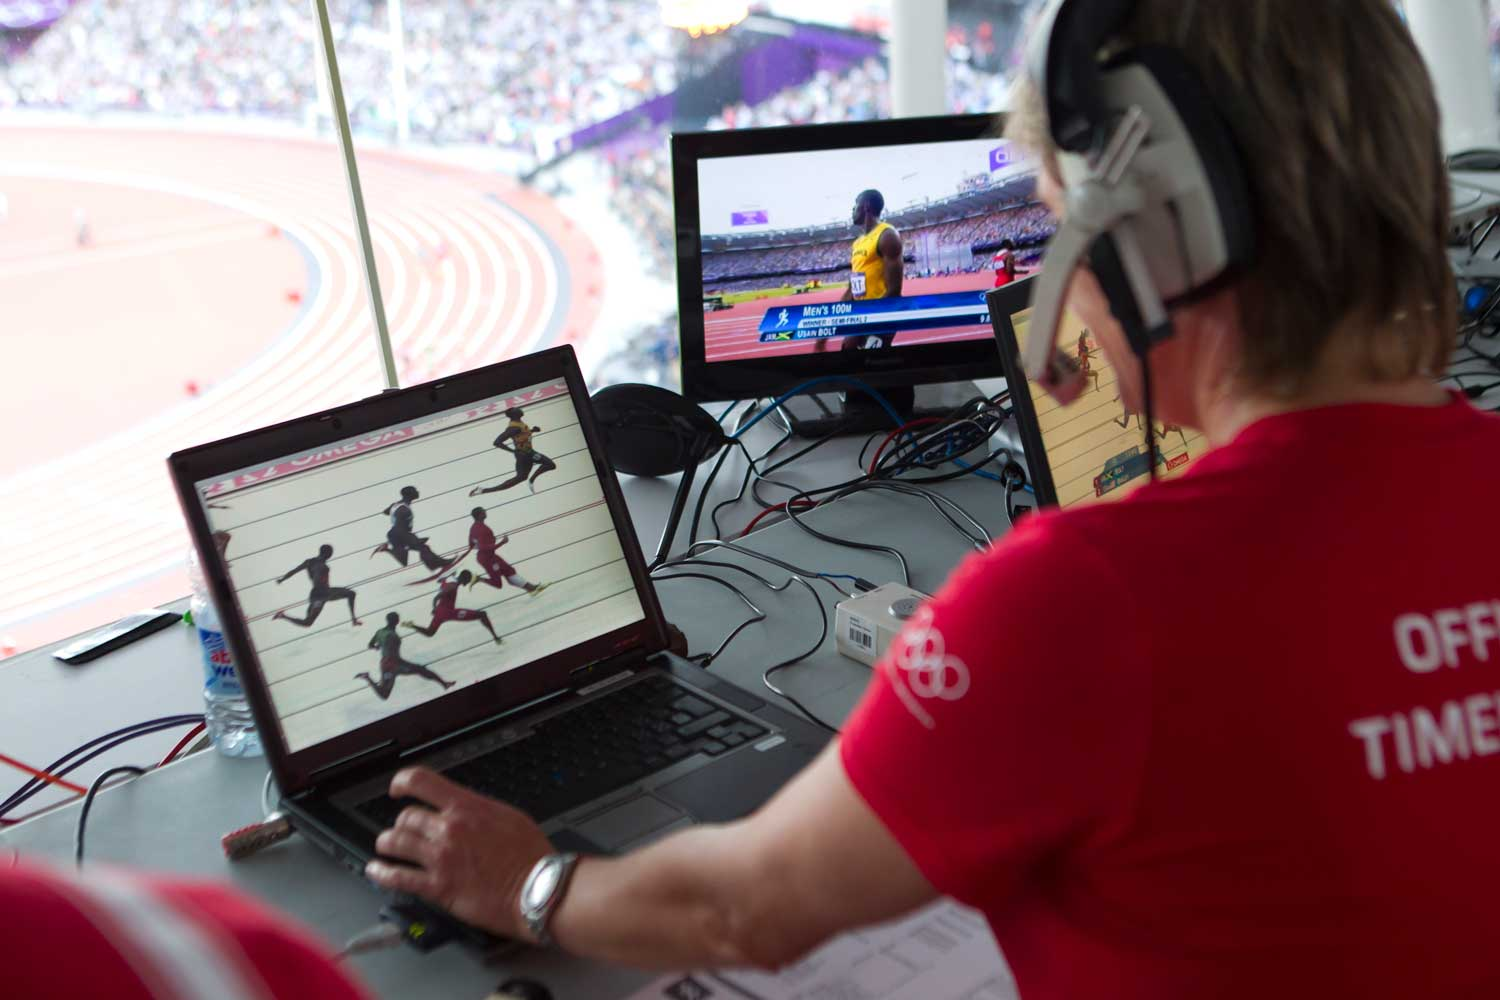 Omega will arrive at the Tokyo Olympics with 400 tons of equipment including public scoreboards, sport-specific scoreboards, 200km of cables and optical fiber.